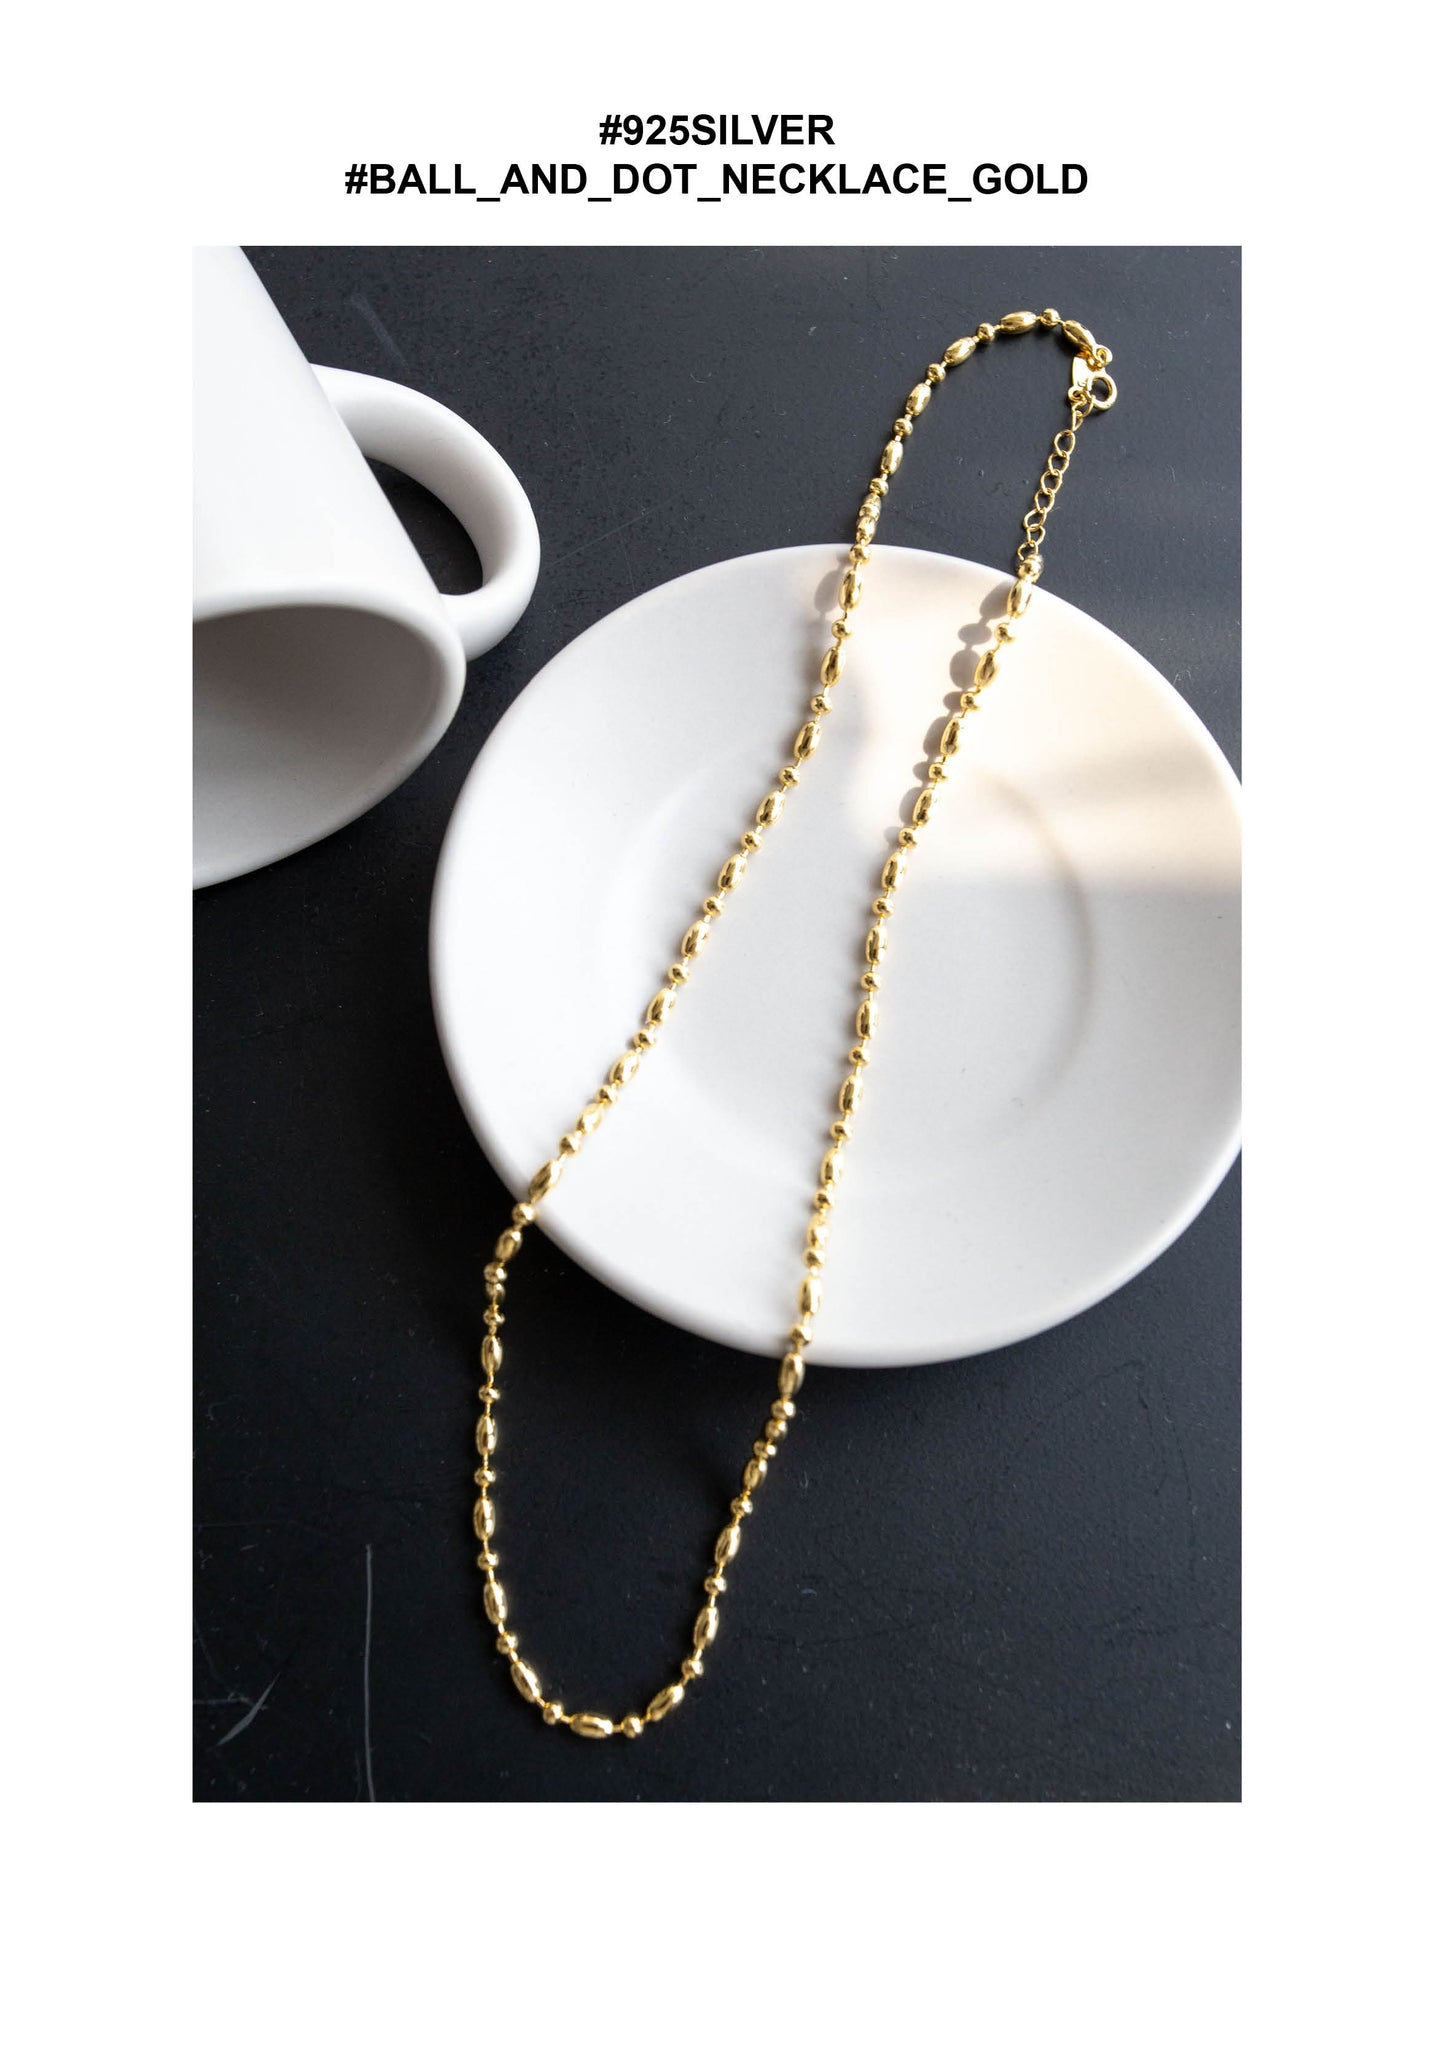 925 Silver Ball and Dot Necklace Gold